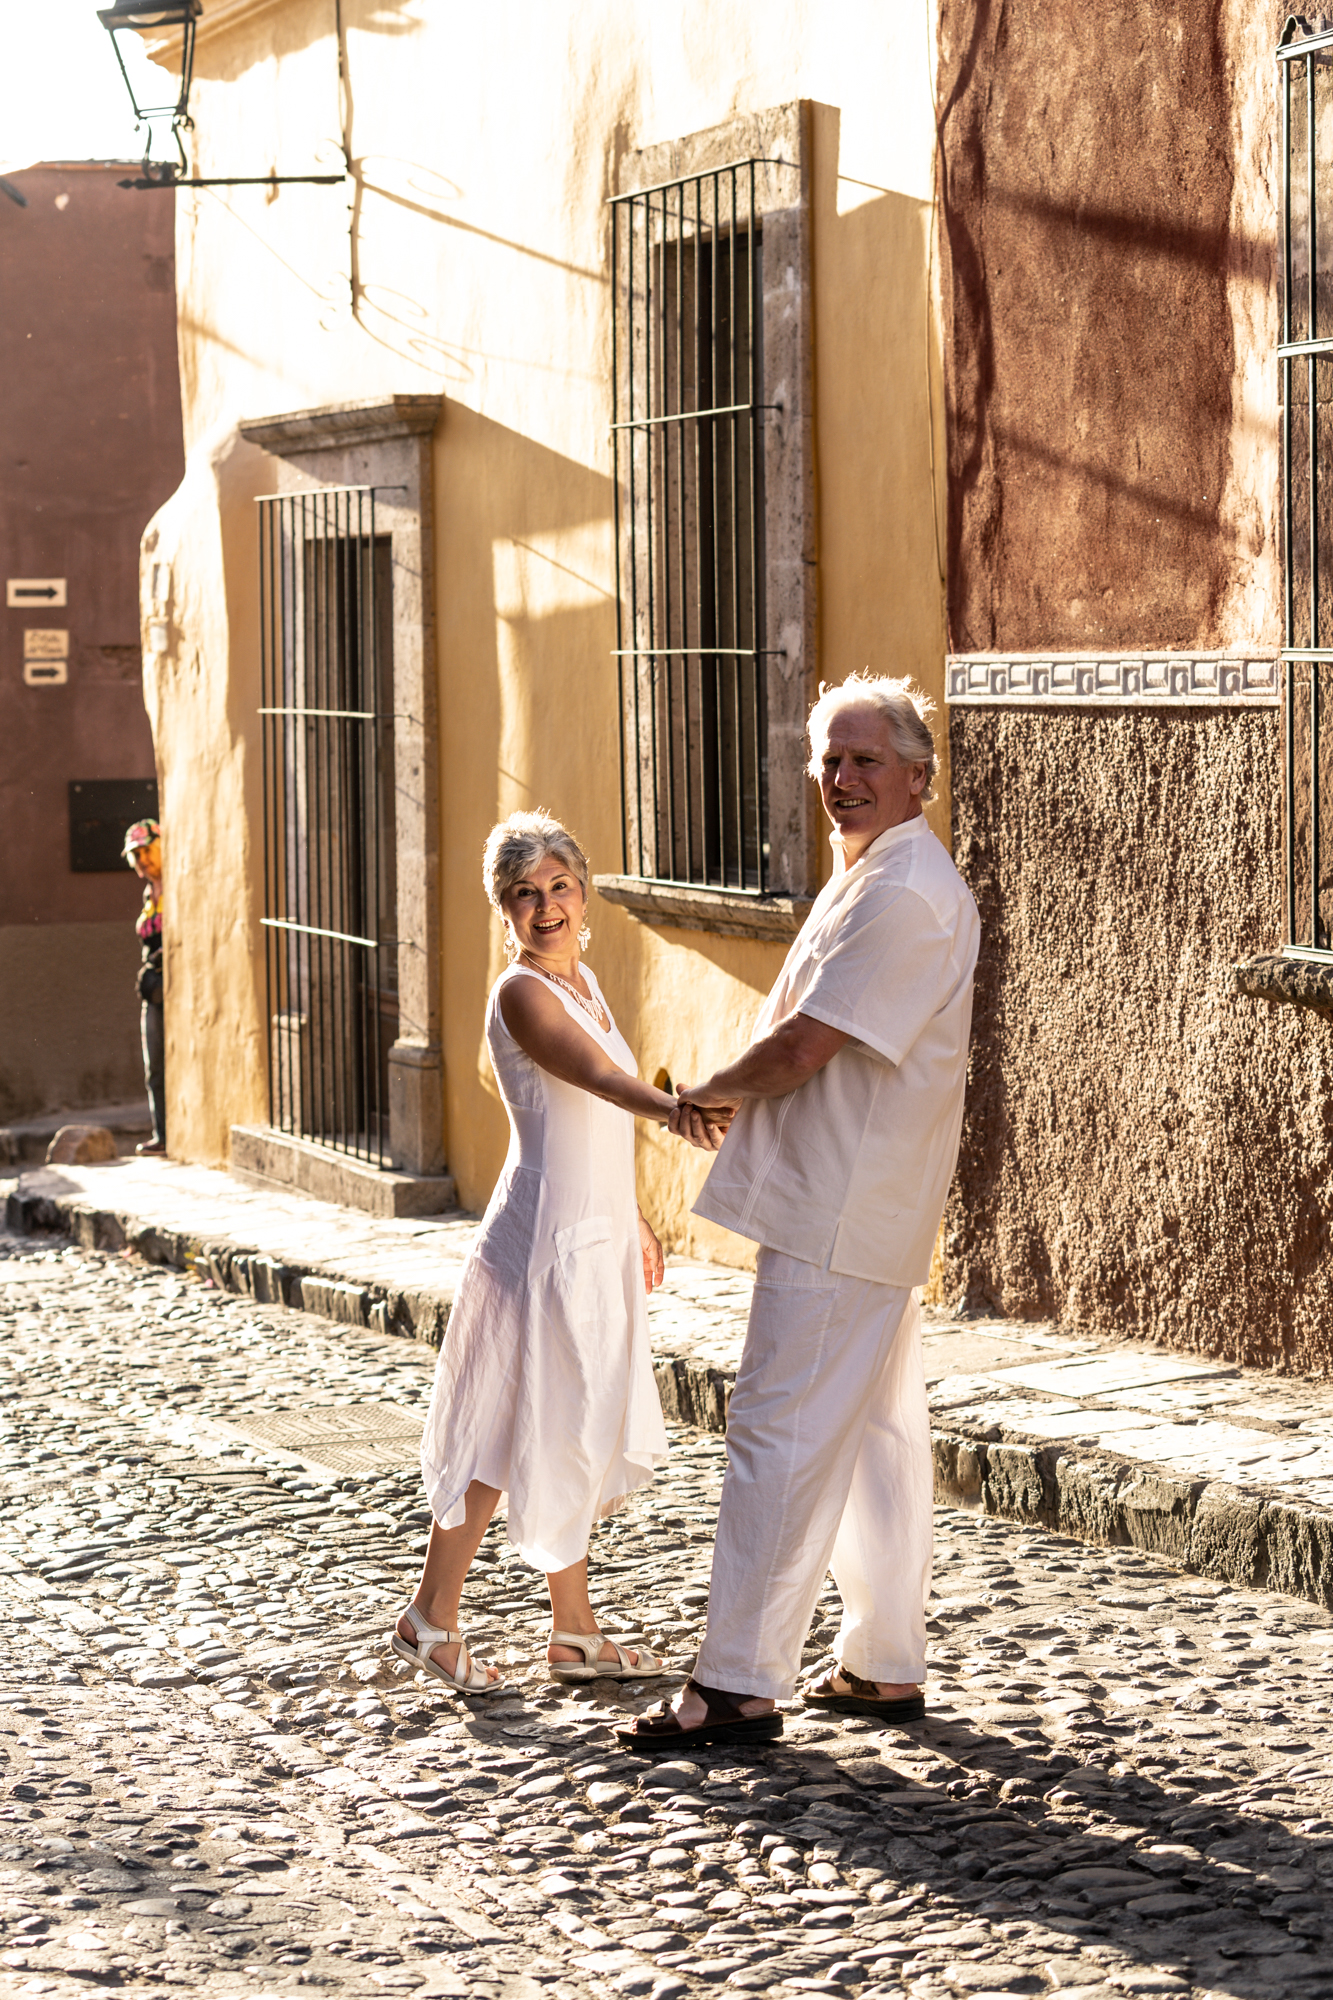 Photoshoot session in San Miguel de Allende with Suzanne and Leo-42.jpg